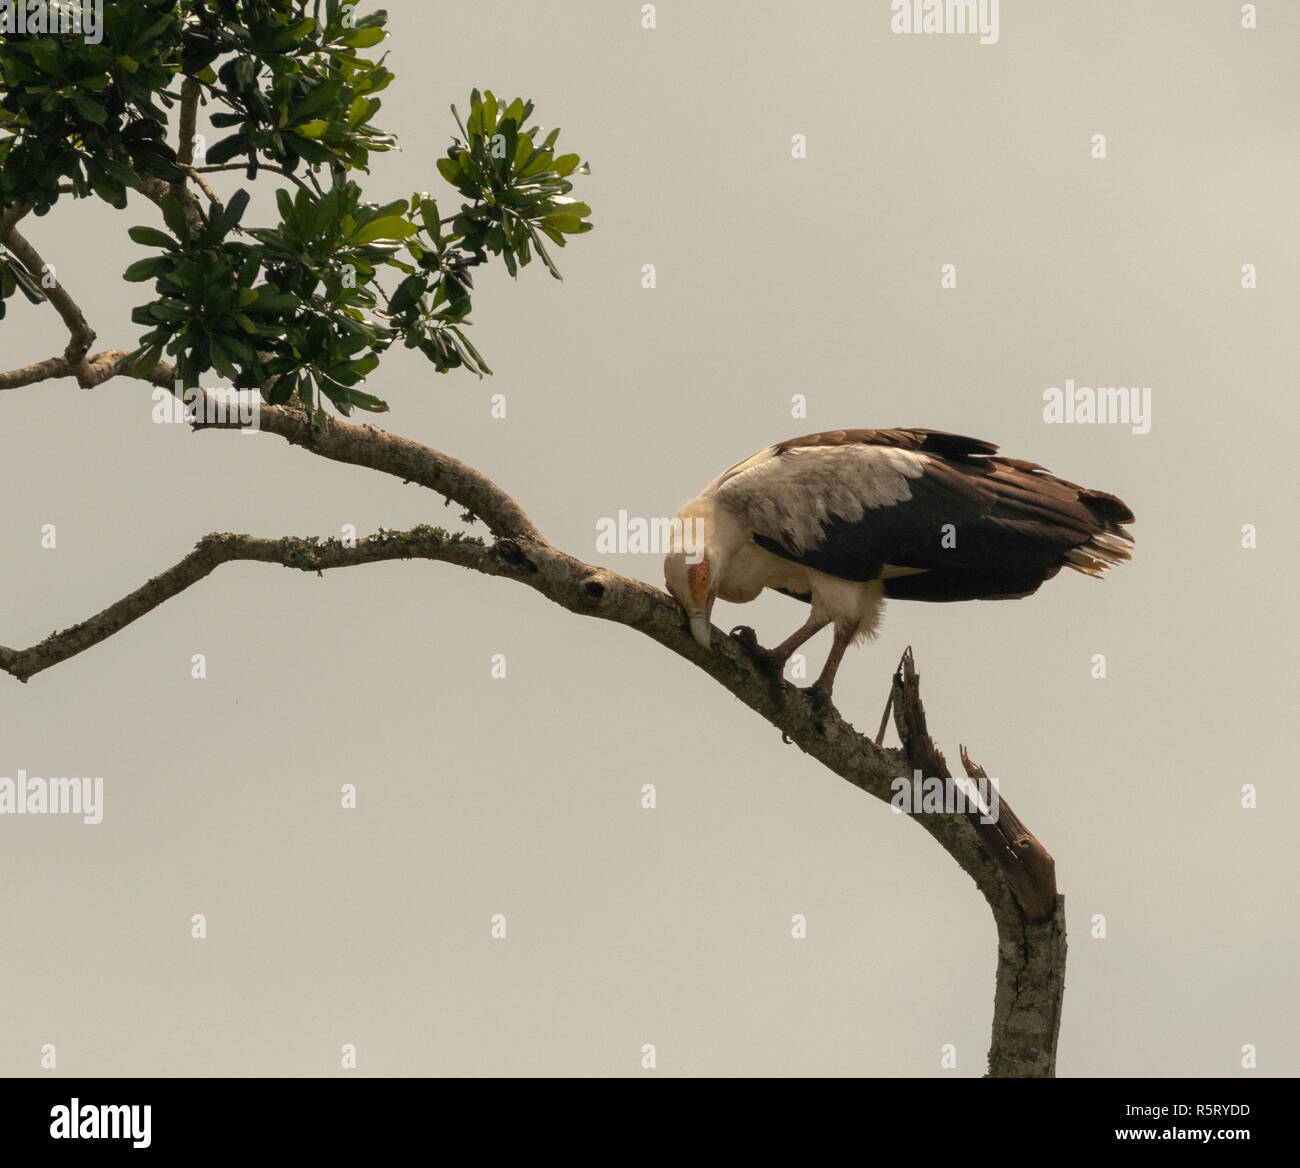 The palm-nut vulture (Gypohierax angolensis) or vulturine fish eagle, at Kazinga Channel. Queen Elizabeth National Park, Uganda, East Africa - Stock Image